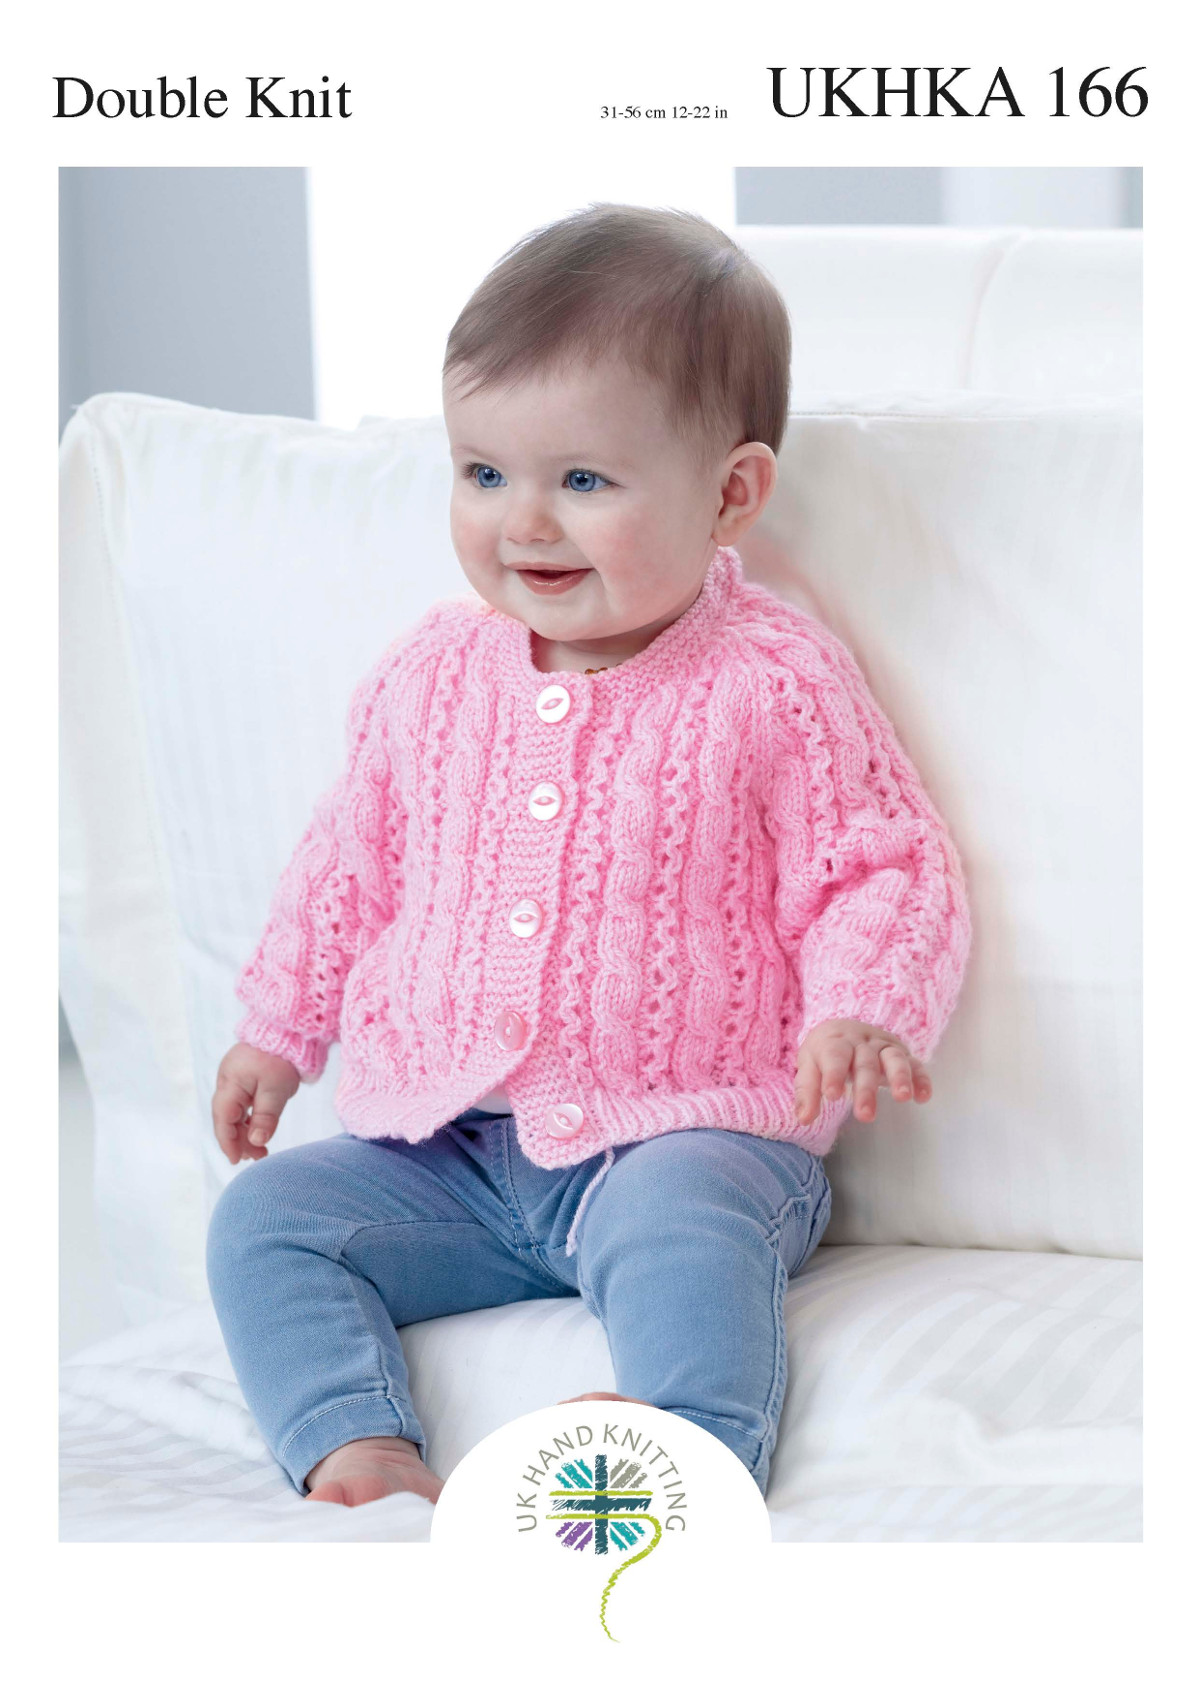 Ukhka 166 baby double knitting pattern lacy round v neck cardigan please look at images below for the chart showing measurements yarn and materials requirement to make this garment this is a ukhka baby knitting pattern bankloansurffo Choice Image